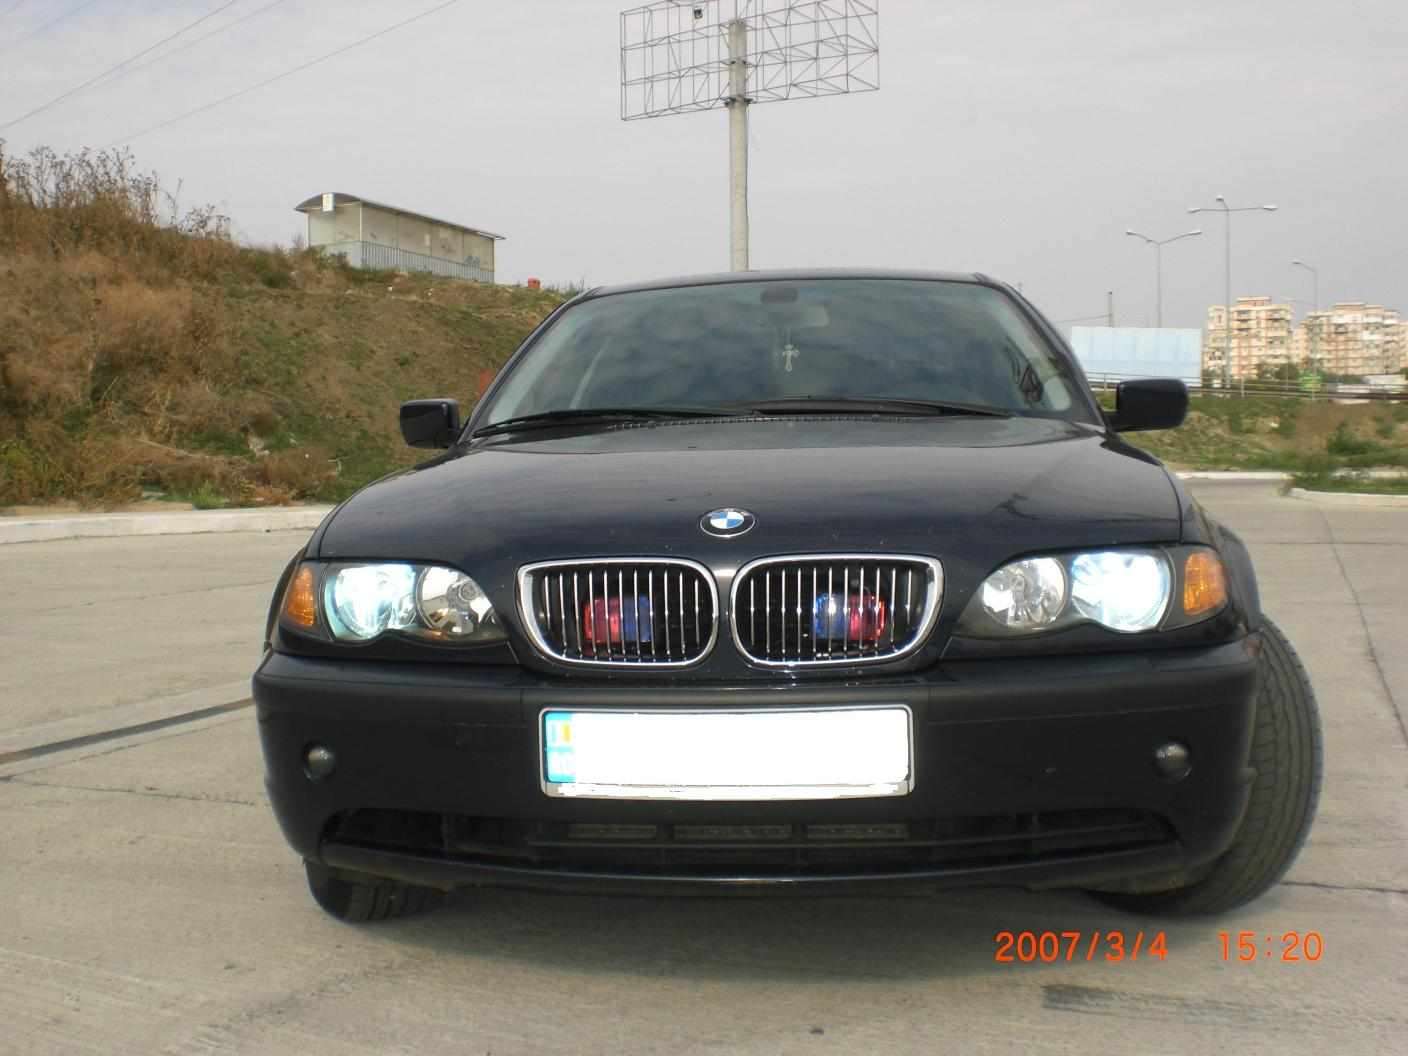 Vind bmw an 2002 cedare leasing